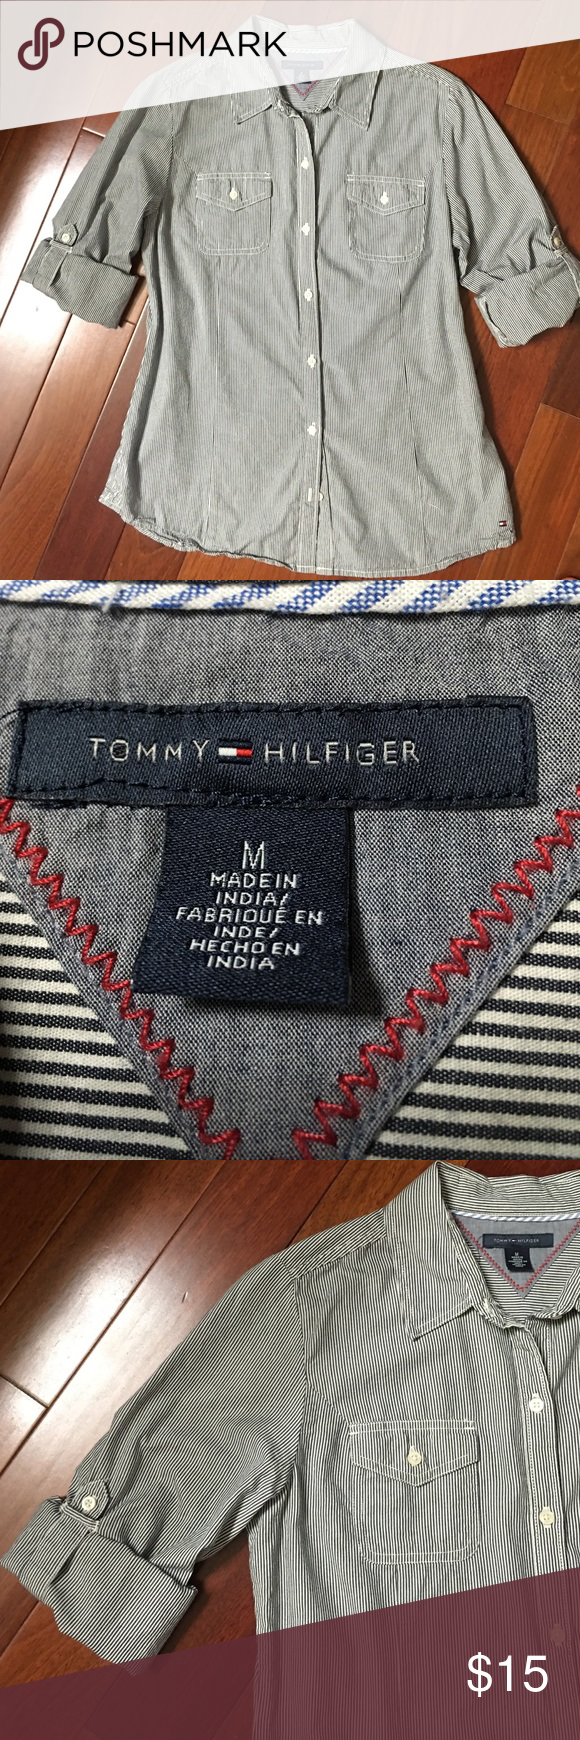 Tomy Hilfiger Navy/White Pinstripe Shirt Tommy Hilfiger button-down longsleeved shirt with roll up sleeves with button fasteners which can be worn either up or down. 100% cotton.   Measures 26 inches from top of shoulder to bottom hem.  19 inches from armpit to armpit.  Like new condition. Barely used. Tommy Hilfiger Tops Button Down Shirts